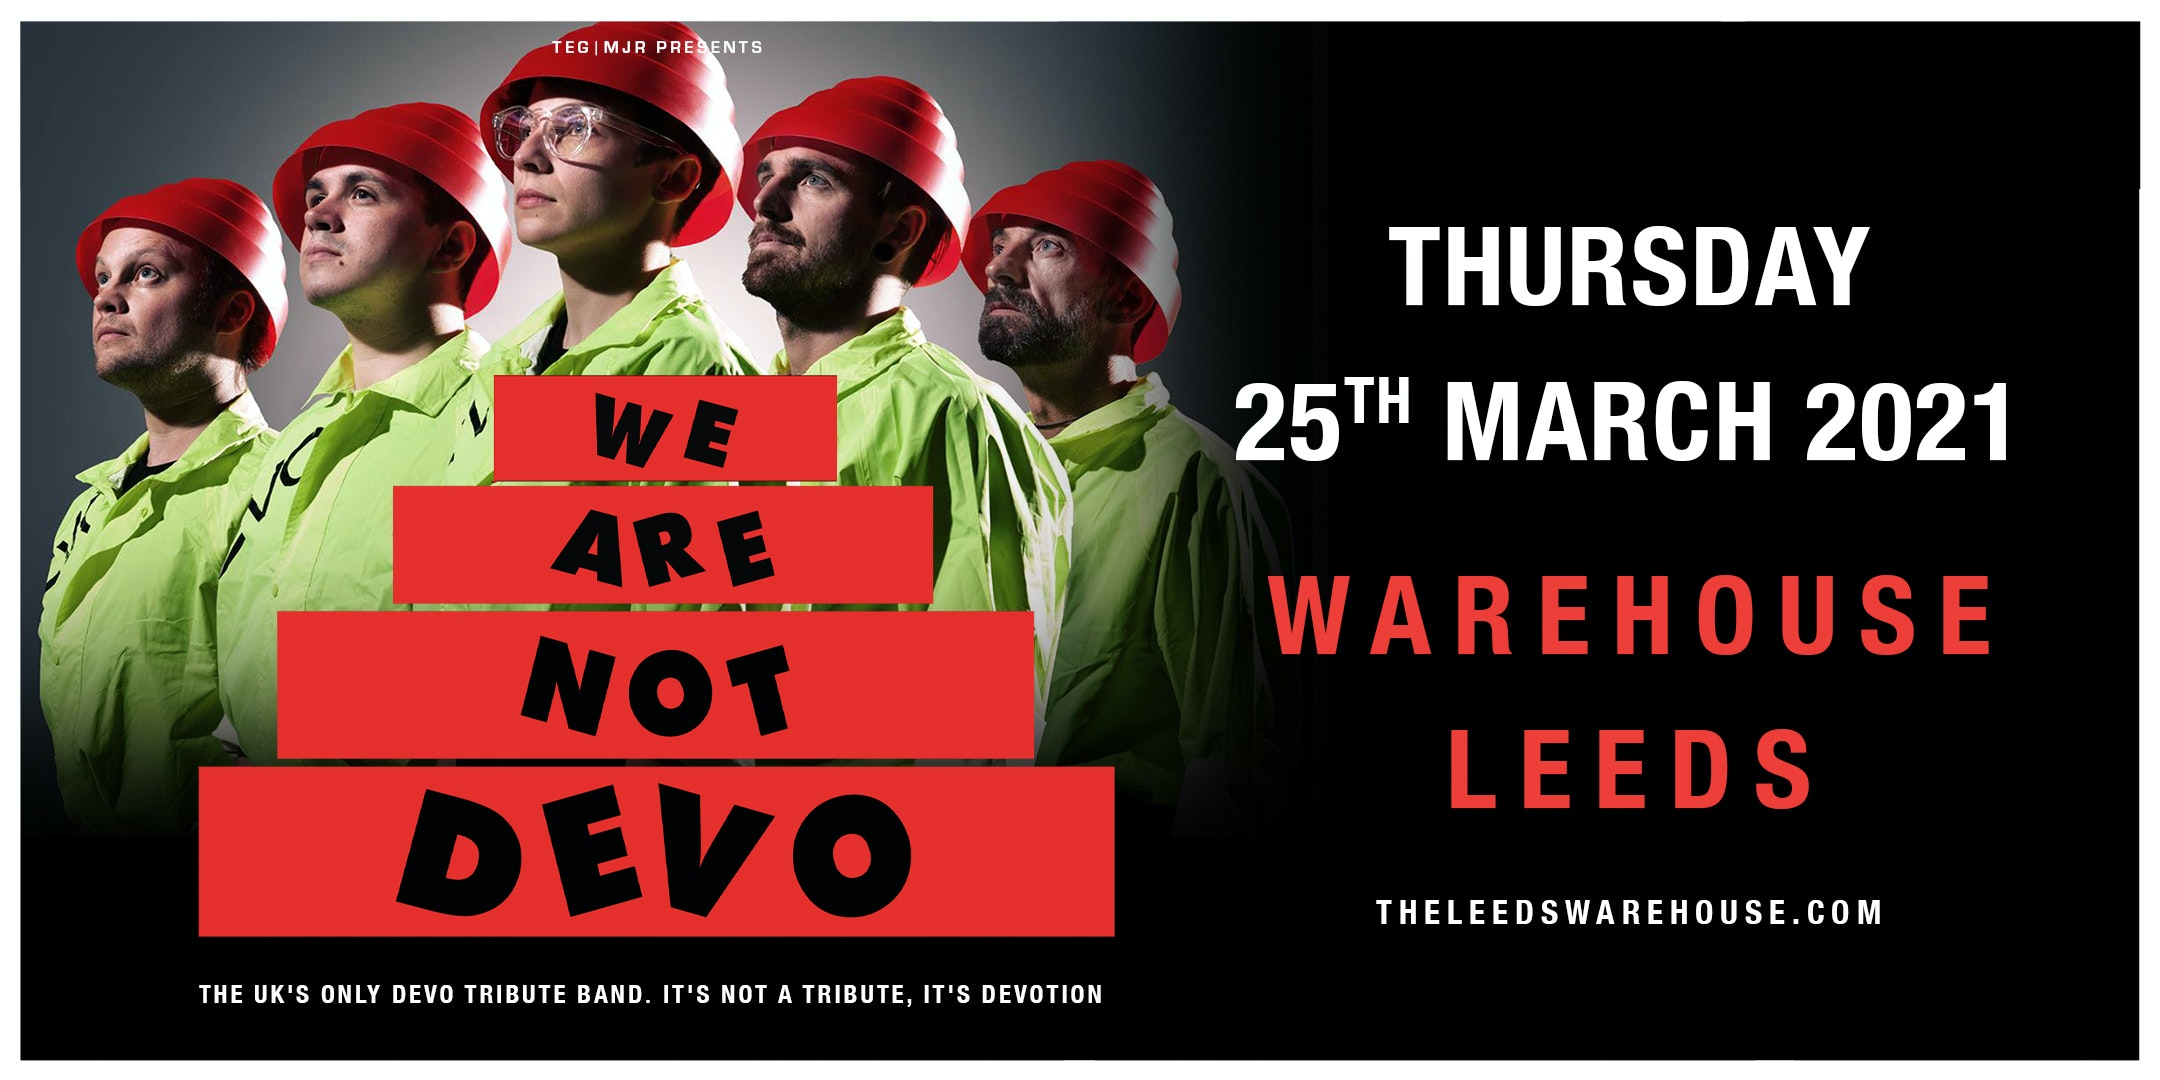 We are not DEVO – Live